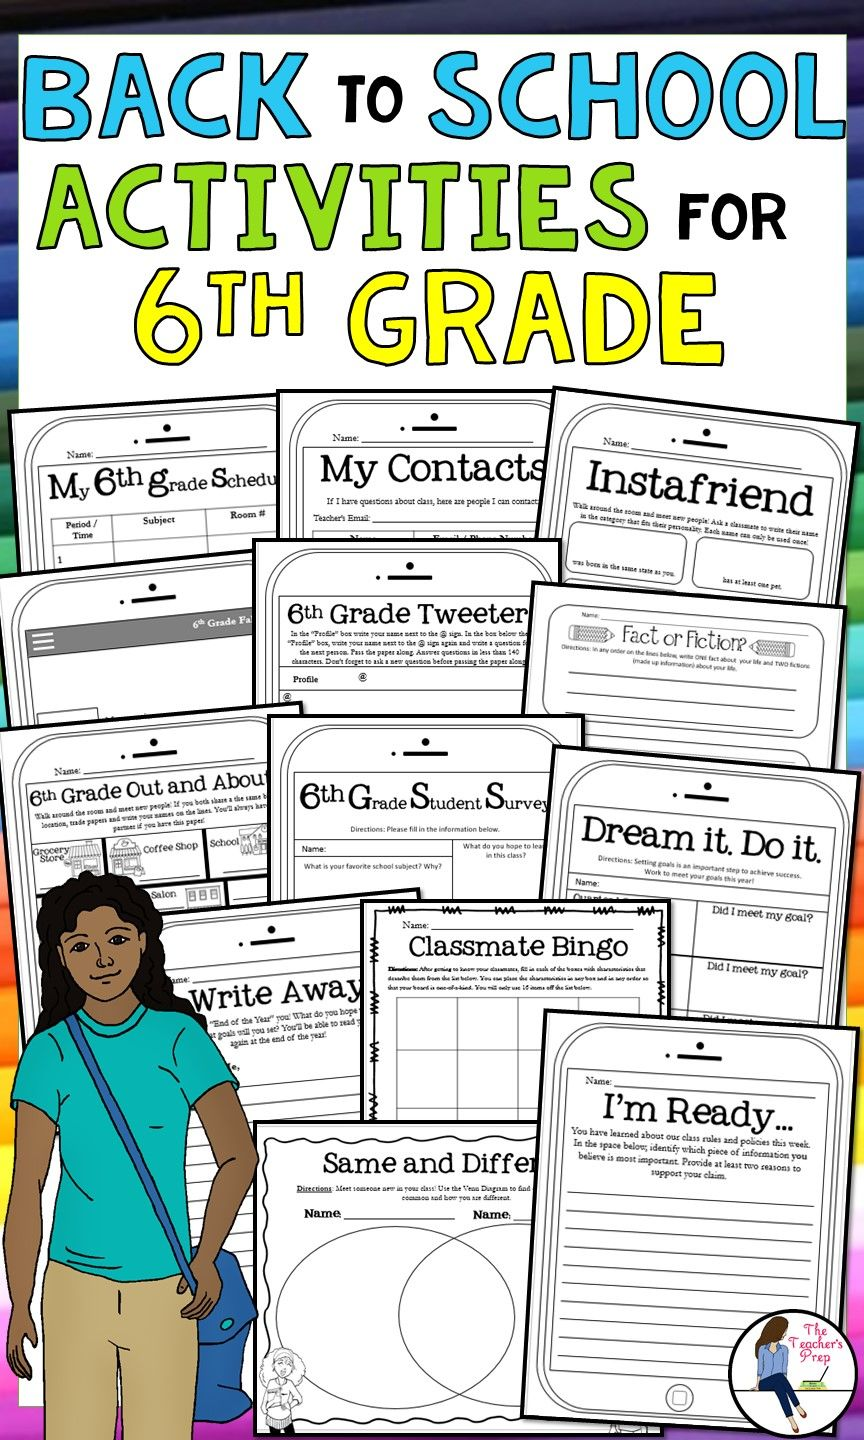 6th Grade Back to School Activities and Icebreakers | Back